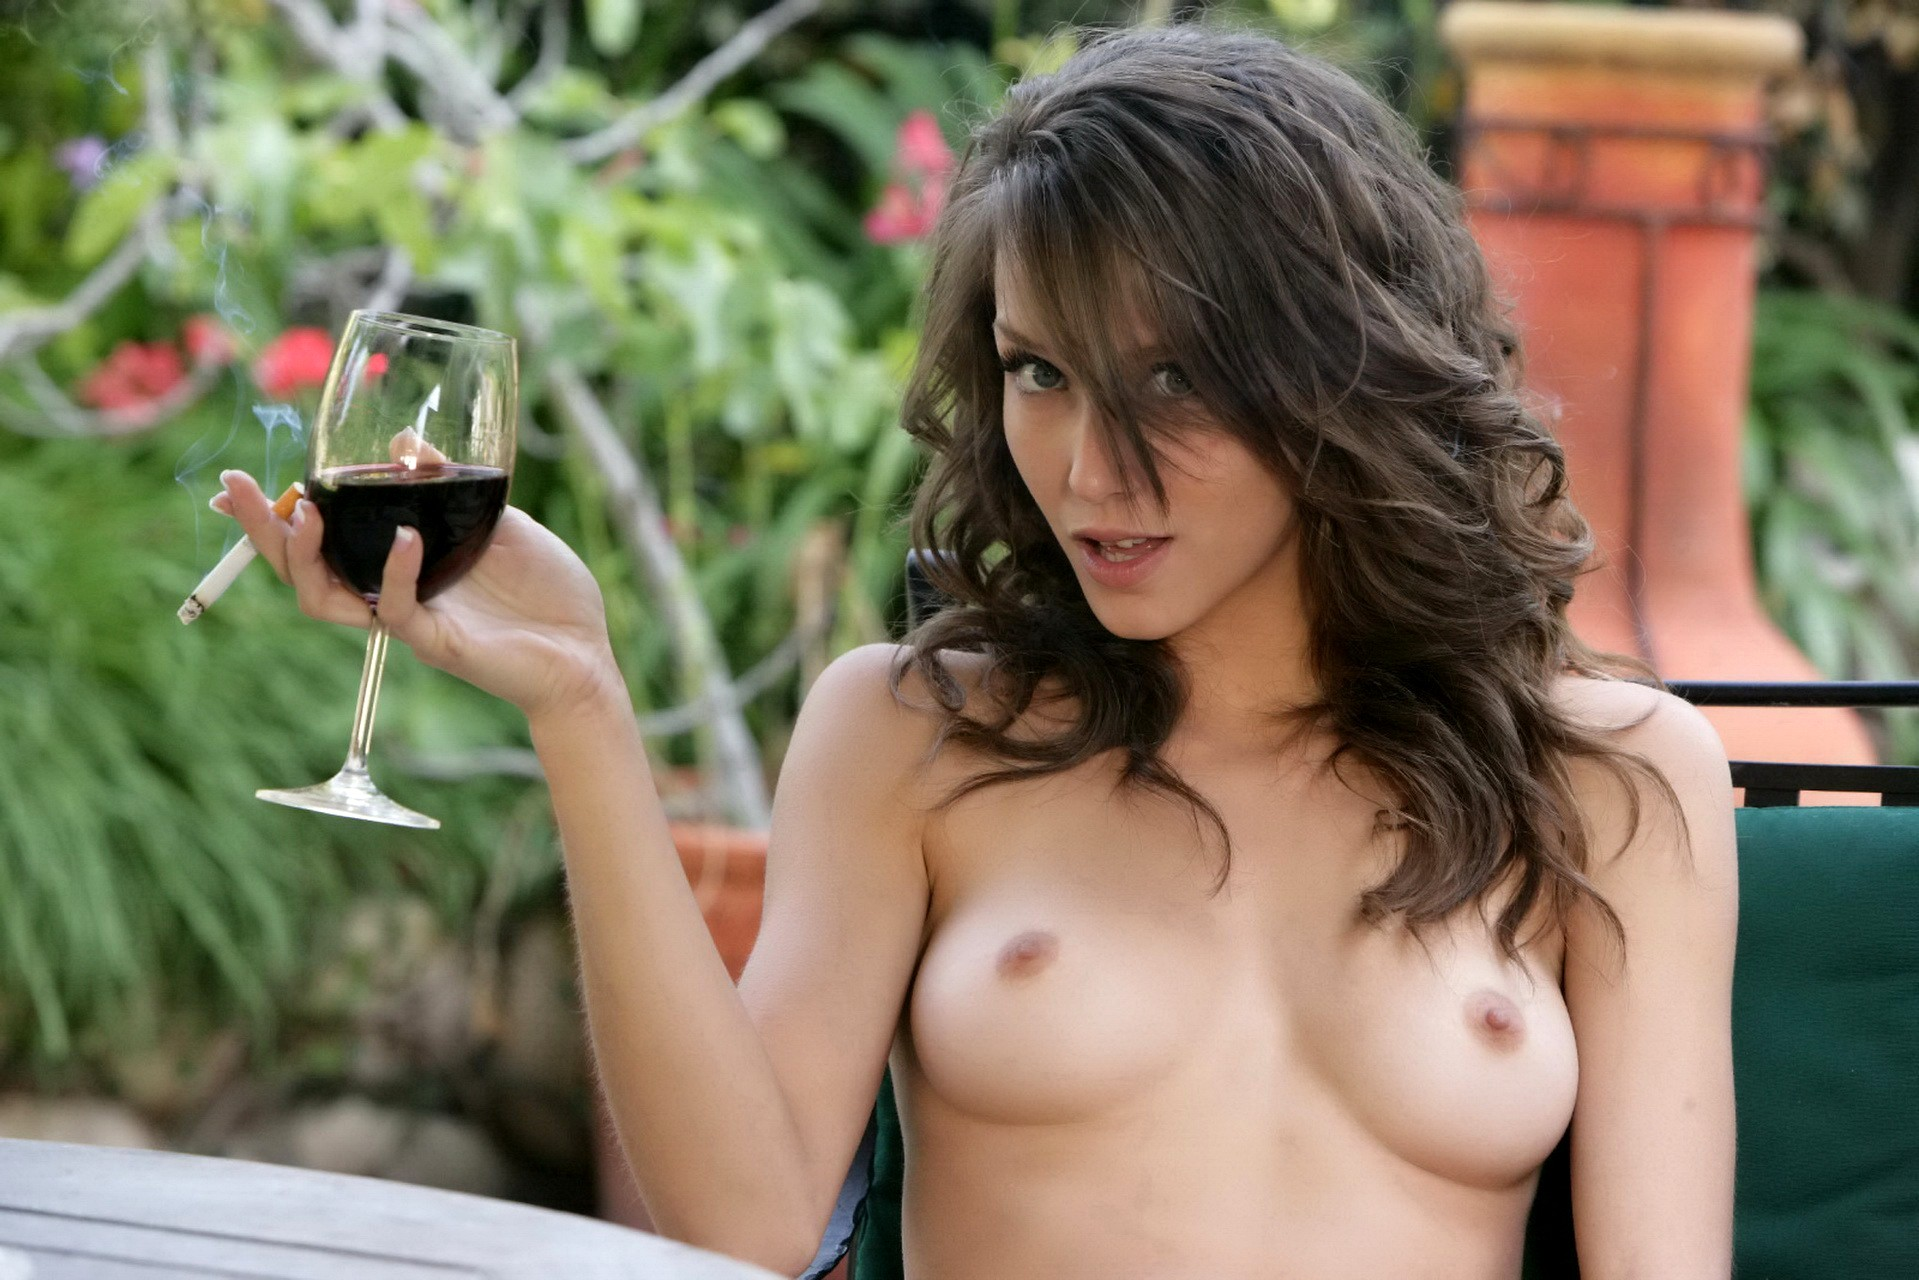 shaved-gorgeous-brunette-babe-malena-morgan-with-outie-belly-button-in-garden-2.jpg